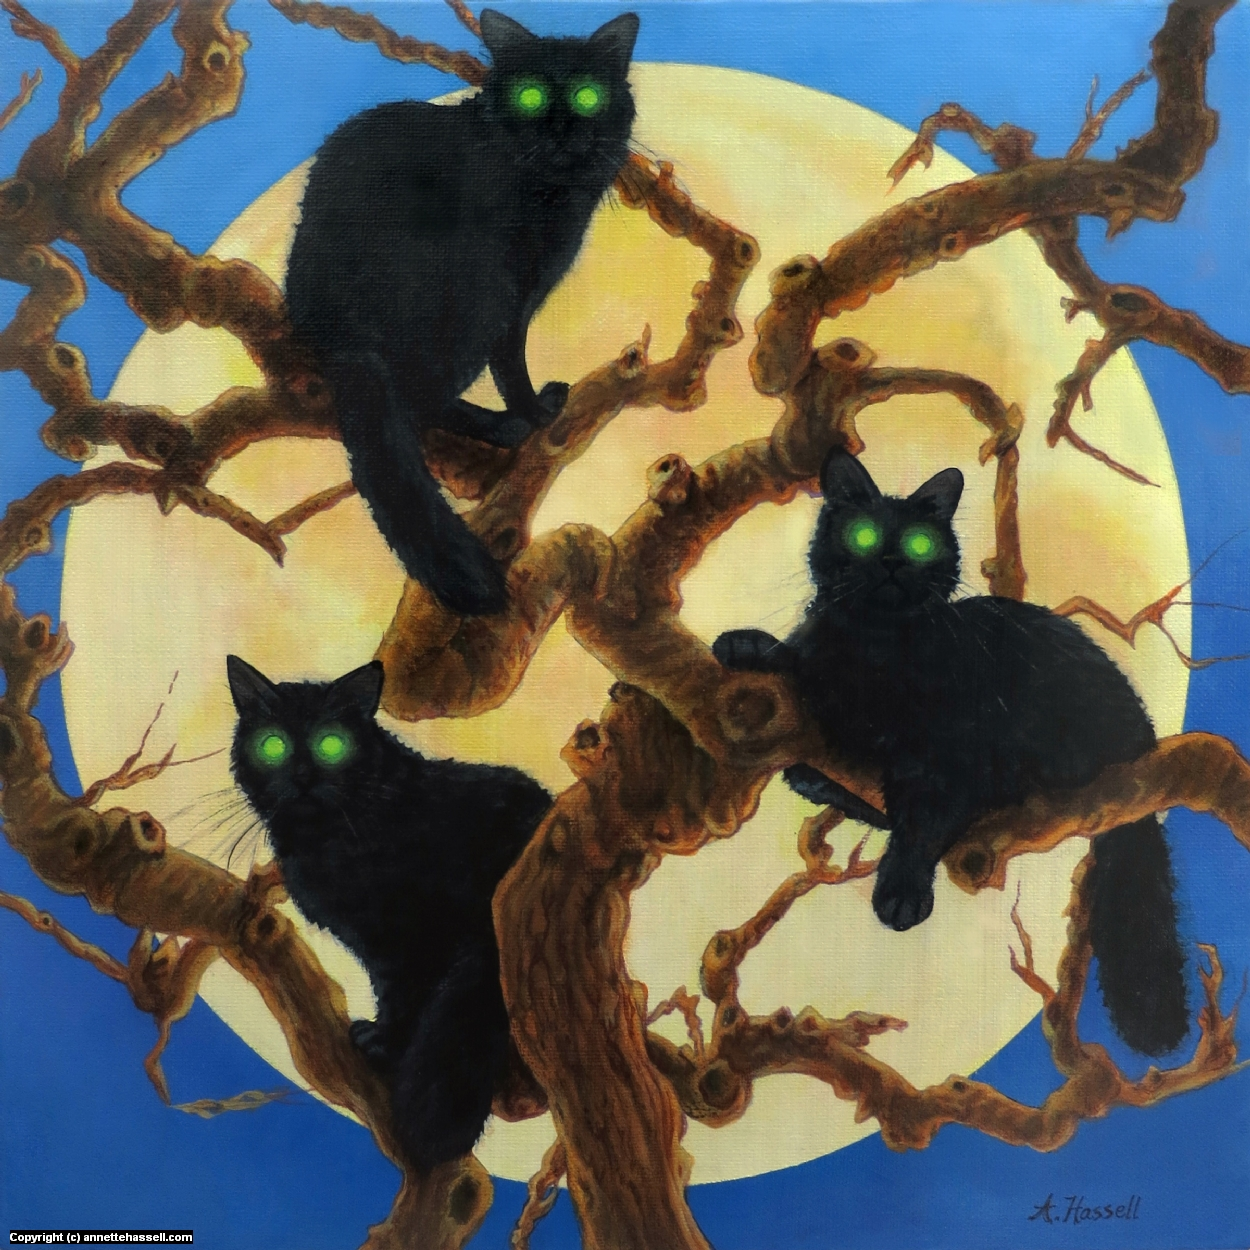 Cat's Tree Artwork by Annette Hassell